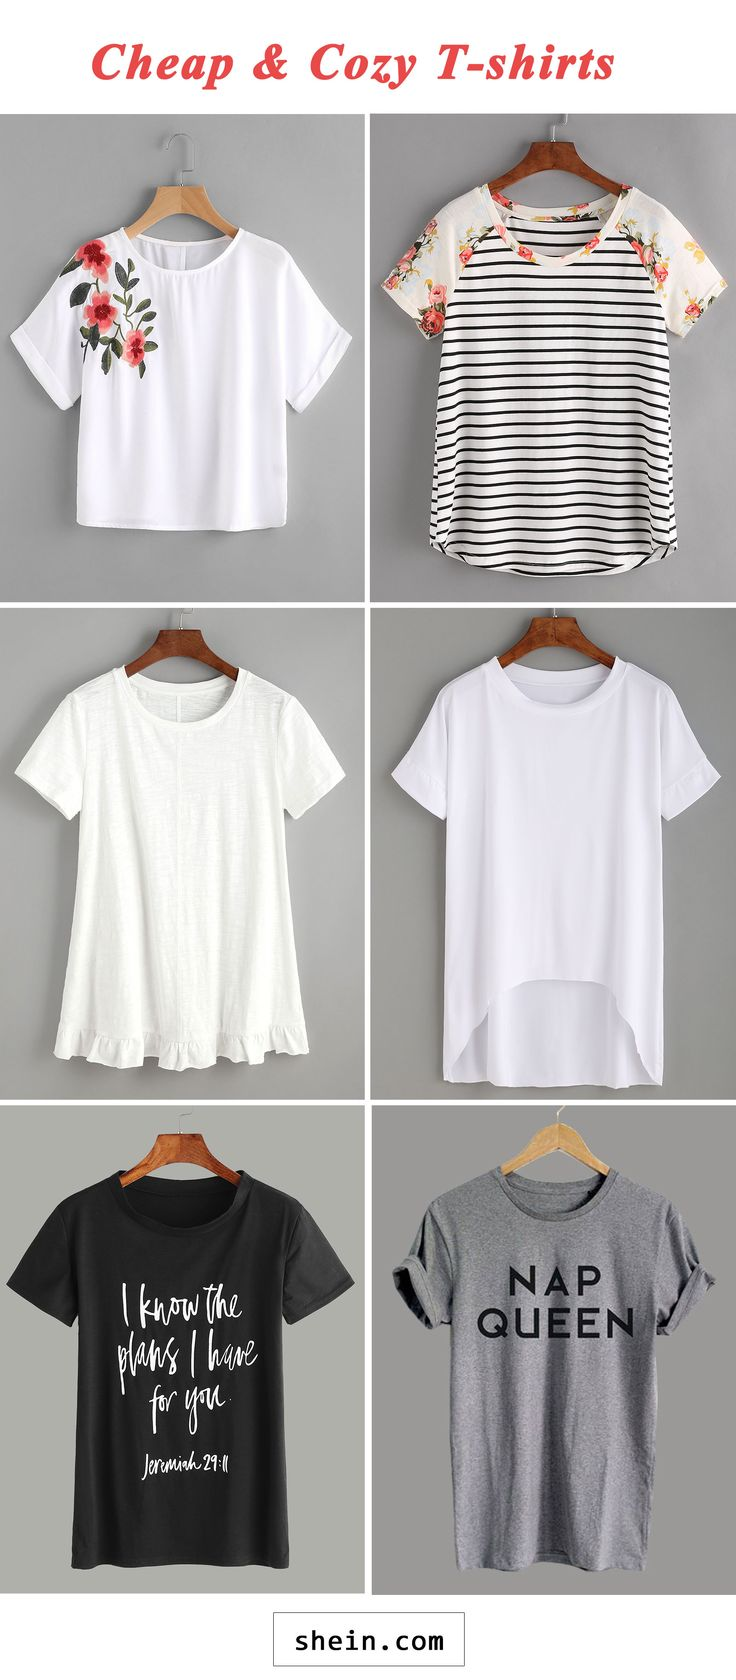 Cheap and cozy T-shirts